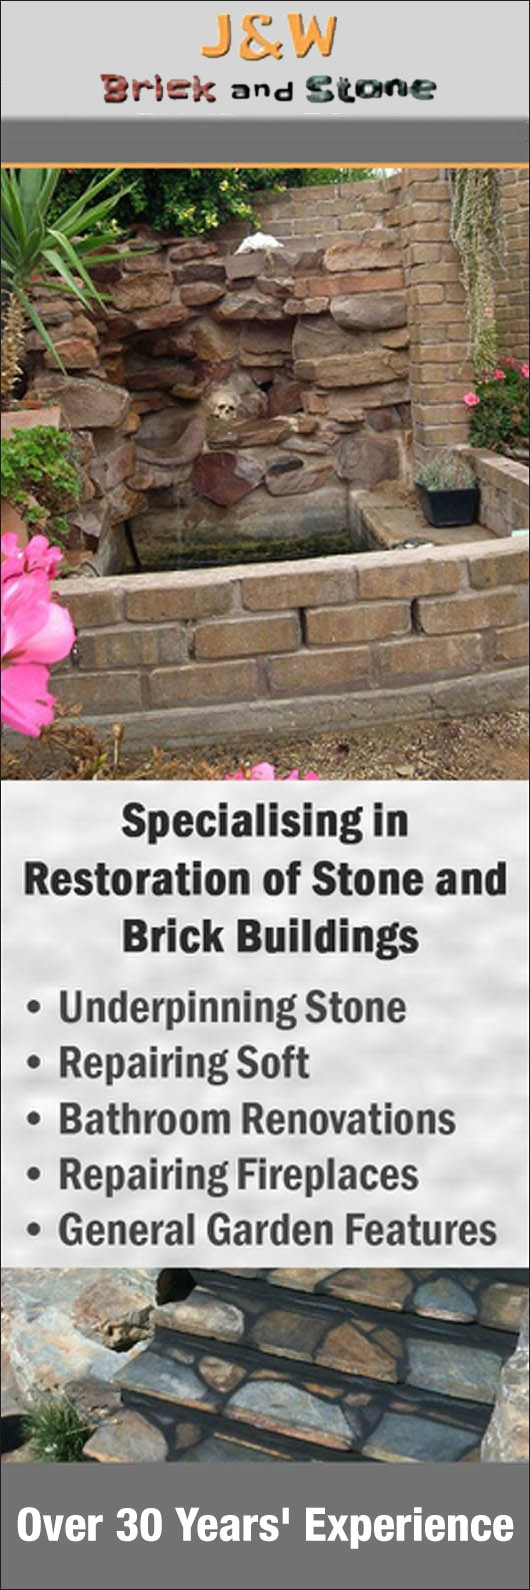 Bathroom Renovations Yorke Peninsula j & w bricks & stone - stonemasons & stonework - fitzroy